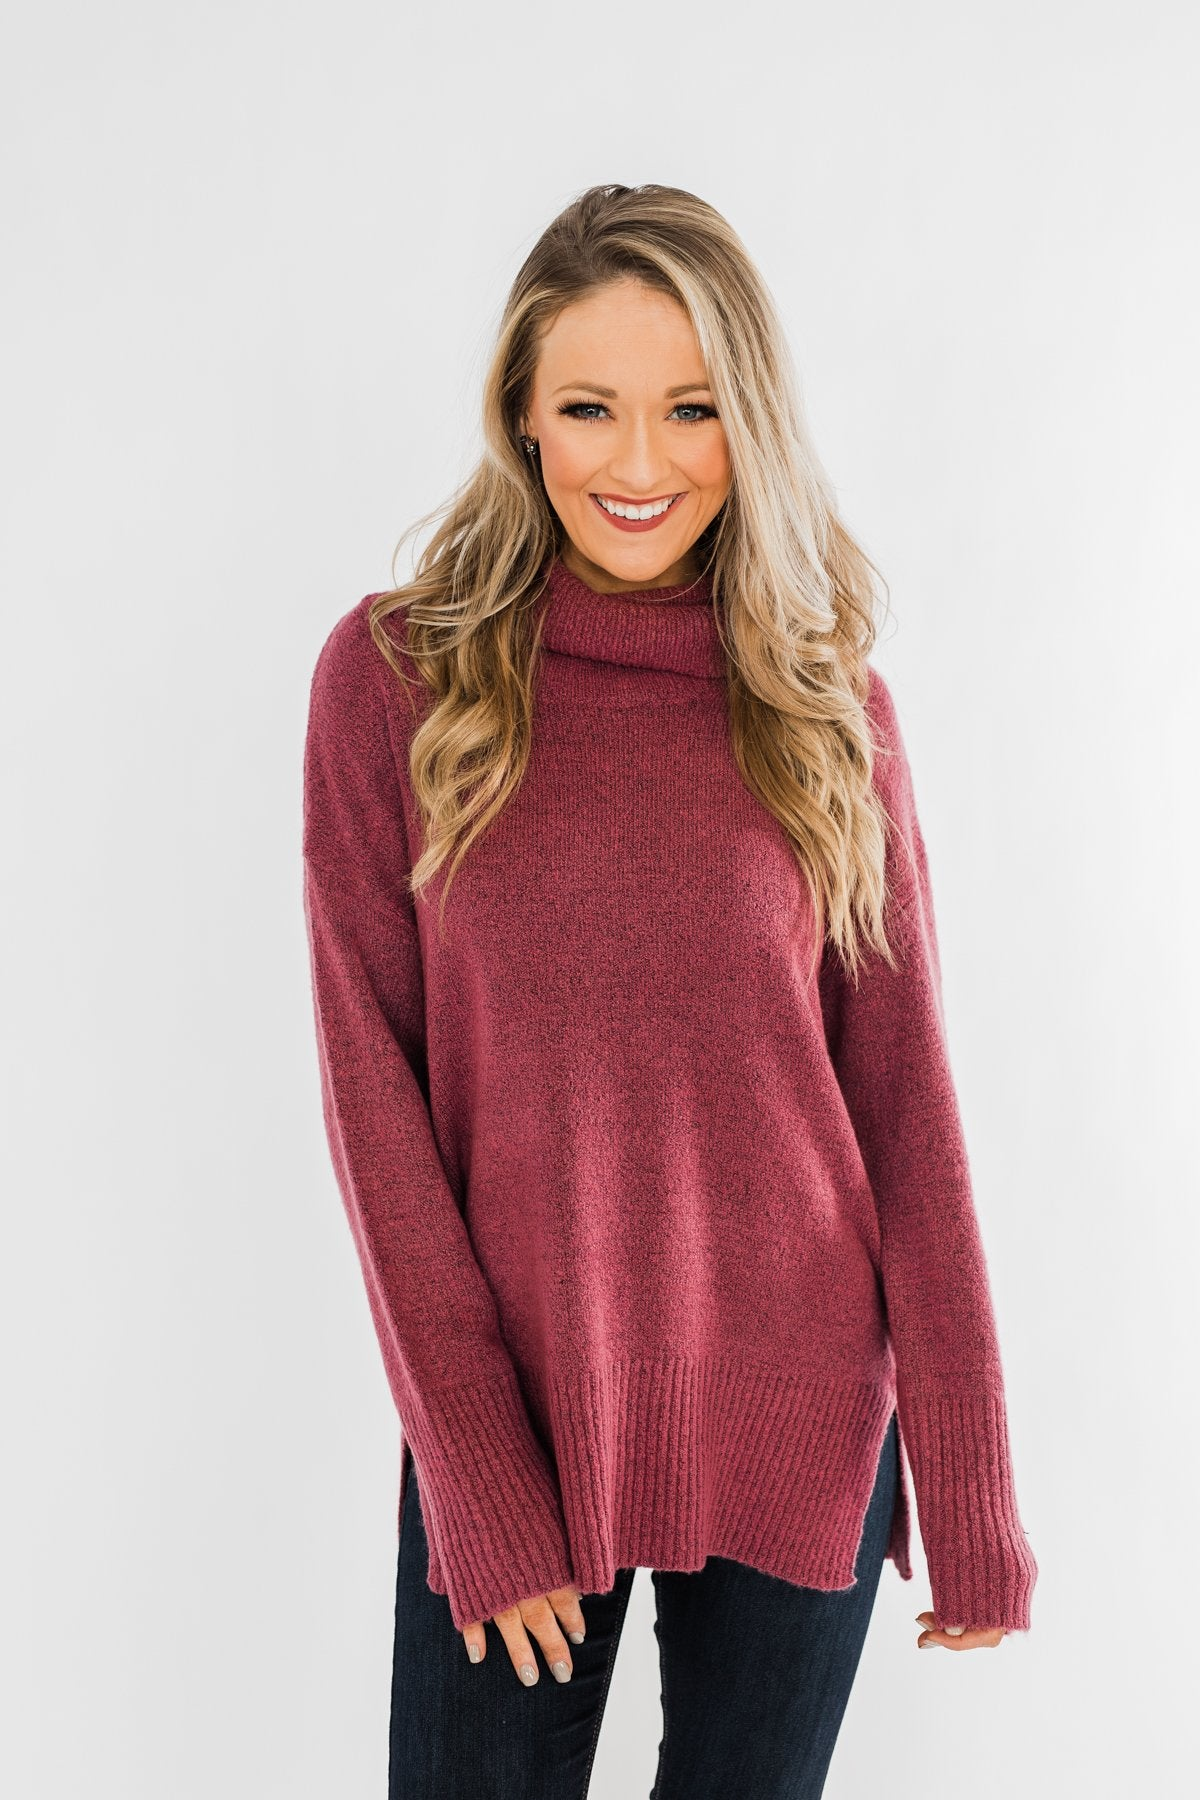 Counting Every Blessing Sweater- Dark Mauve Purple